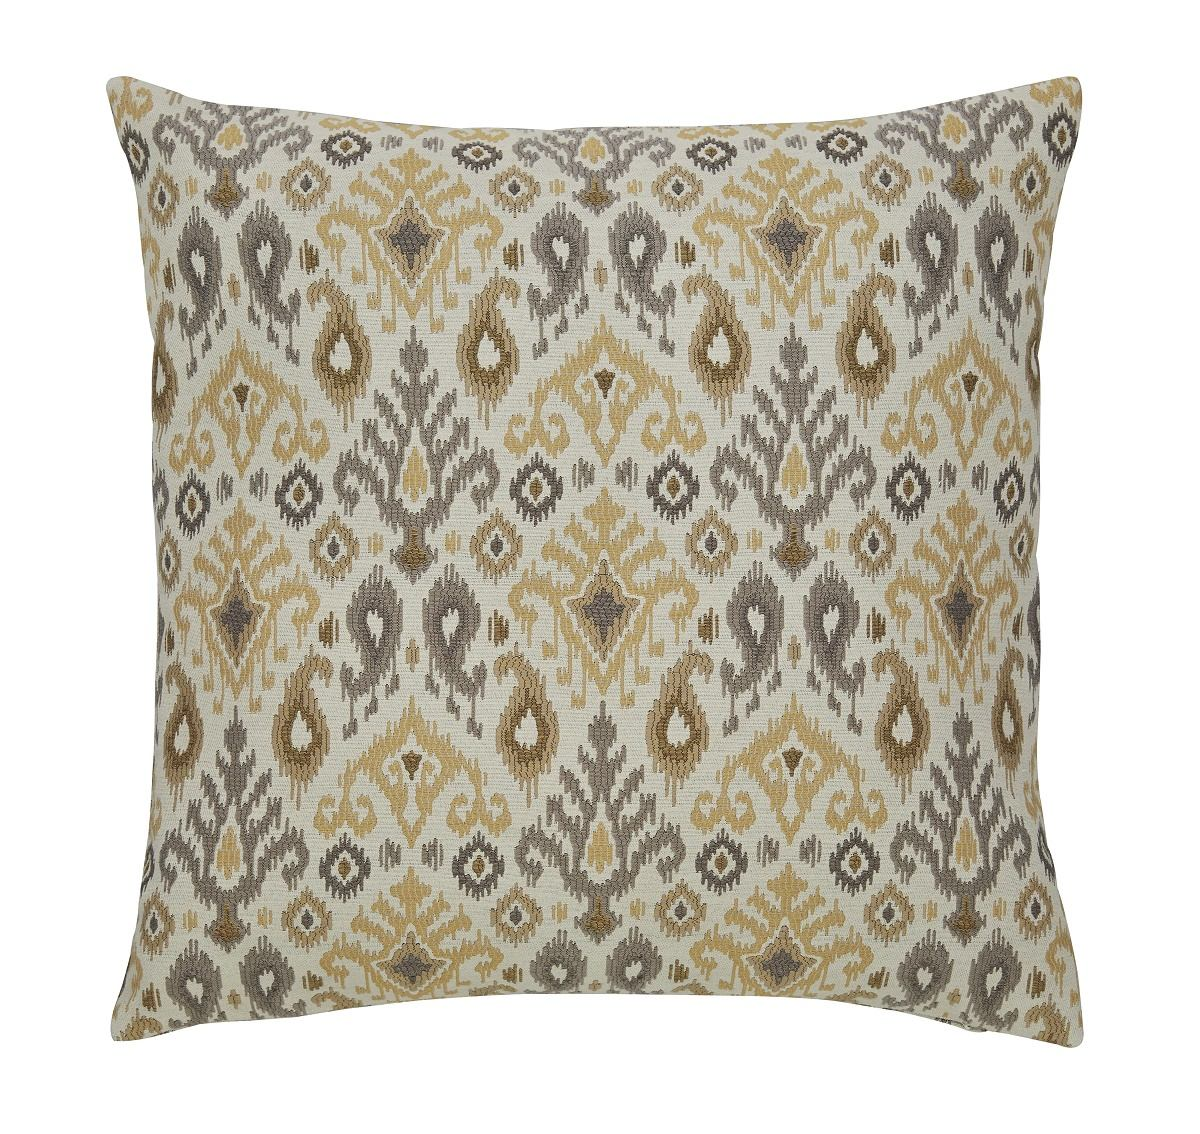 Damarion Ikat Designed Pillow in Taupe and Gold (Set of 4)